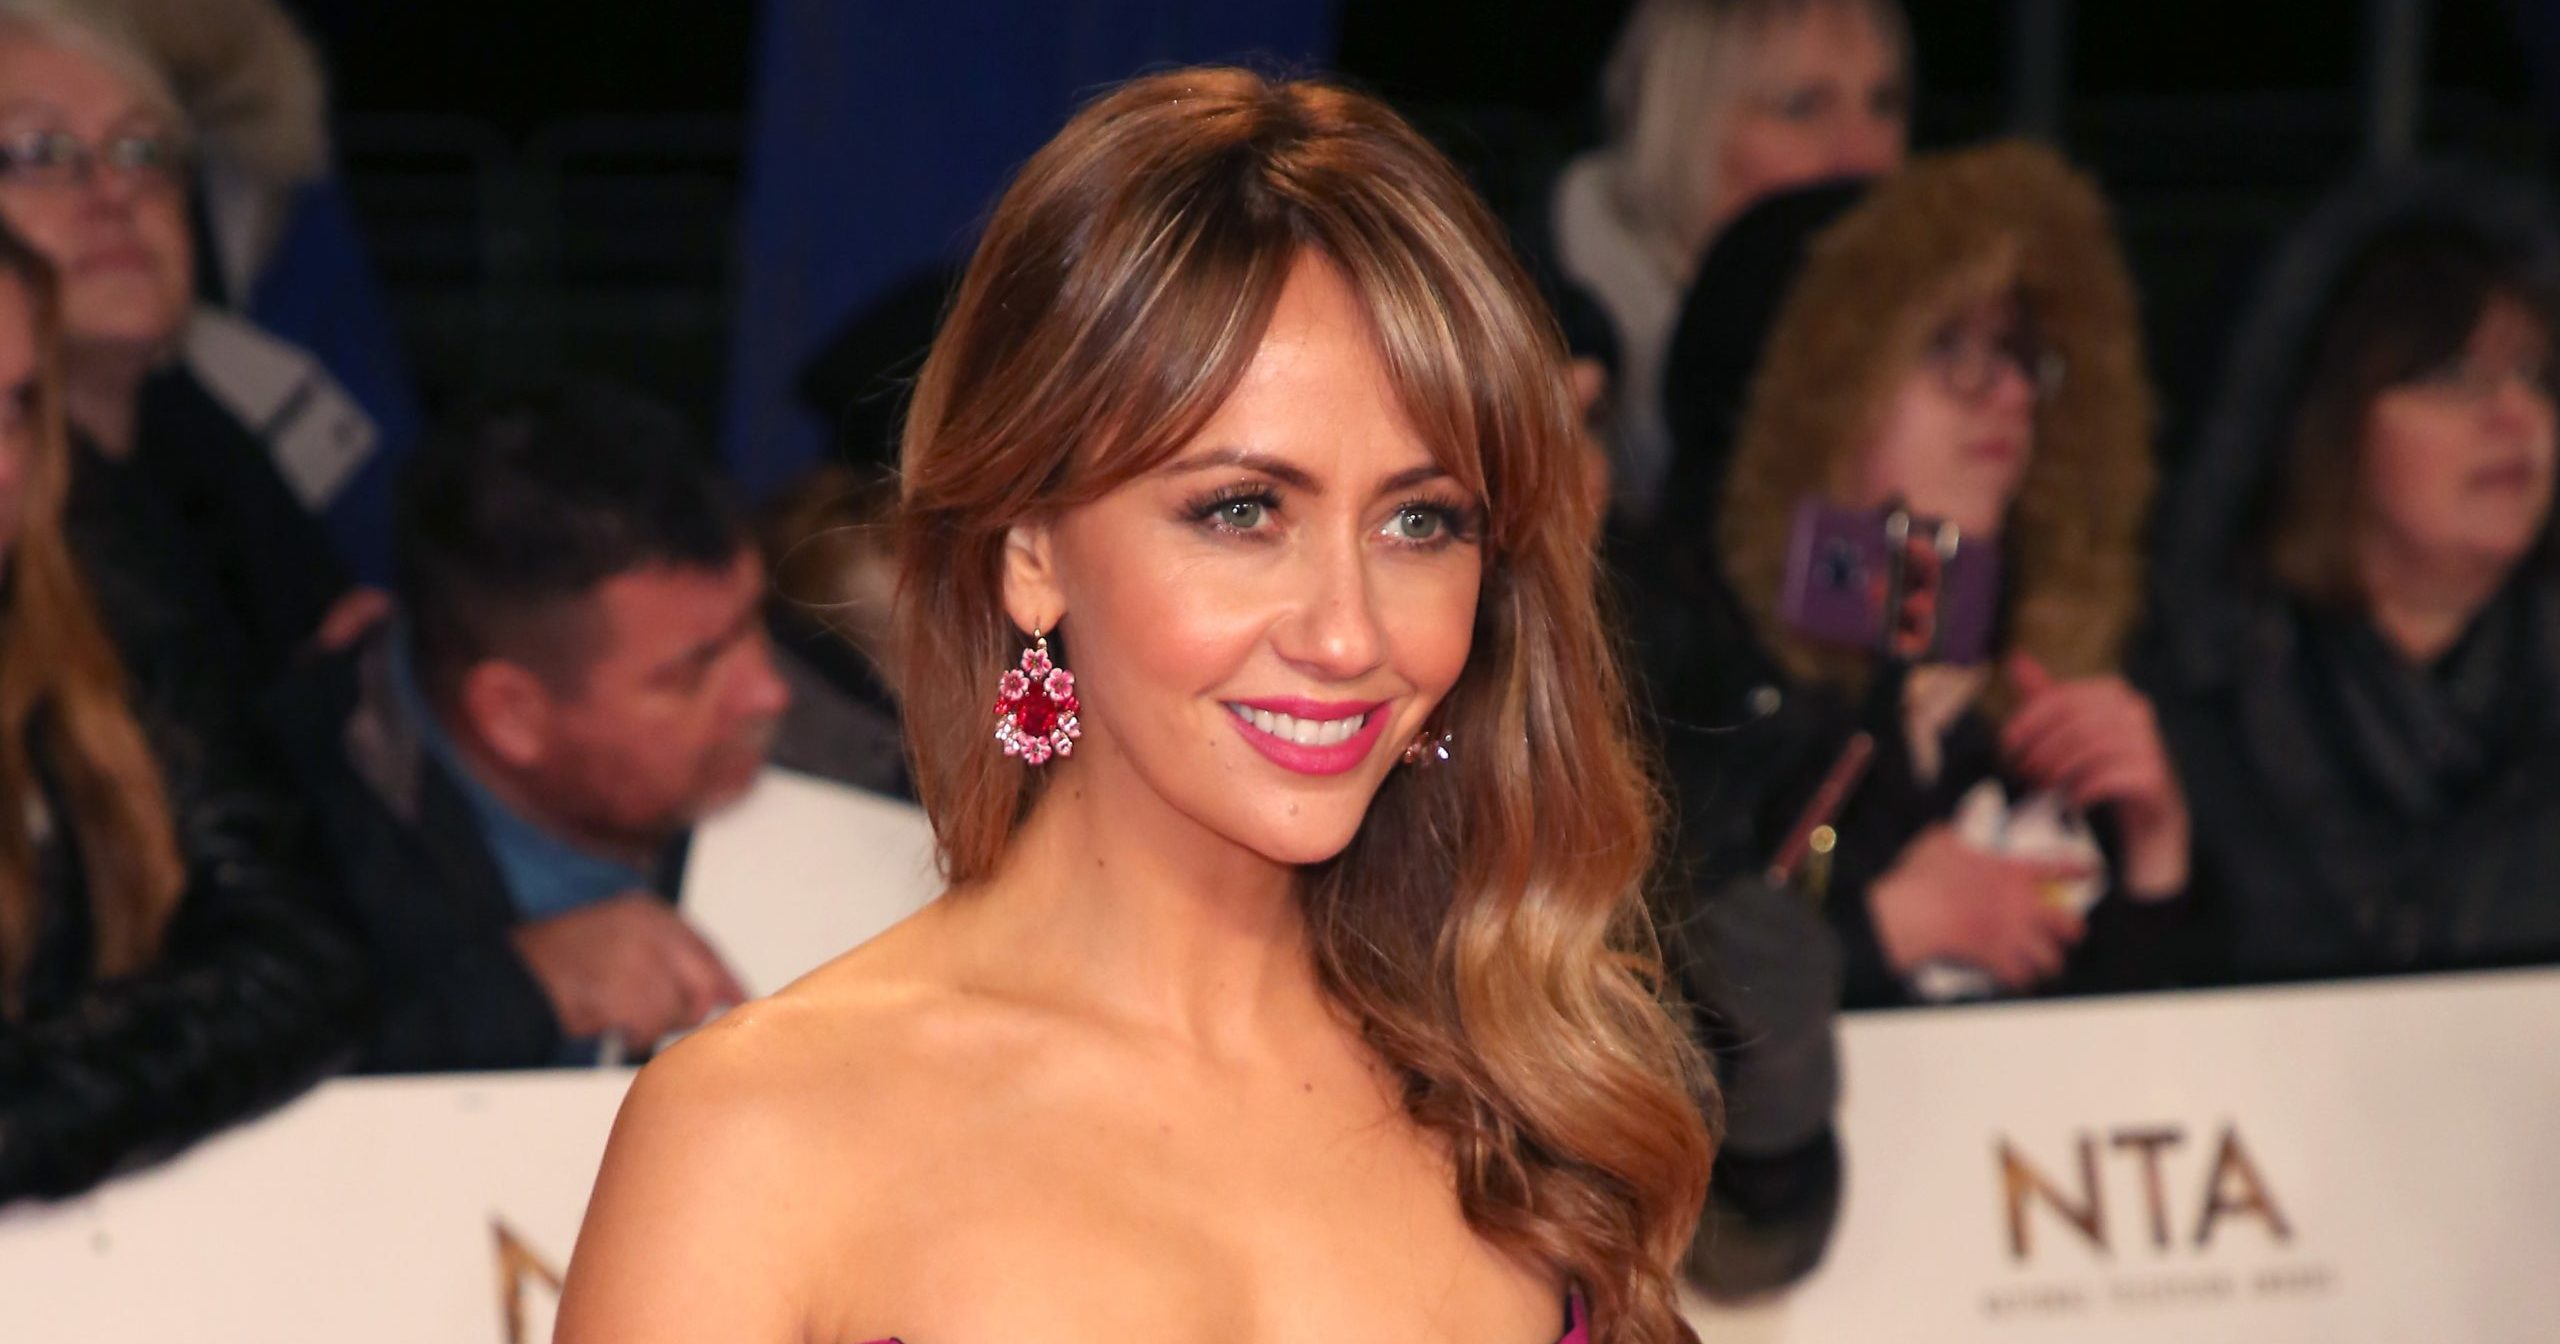 Coronation Street's Samia Longchambon stuns fans with picture of 'lookalike' daughter